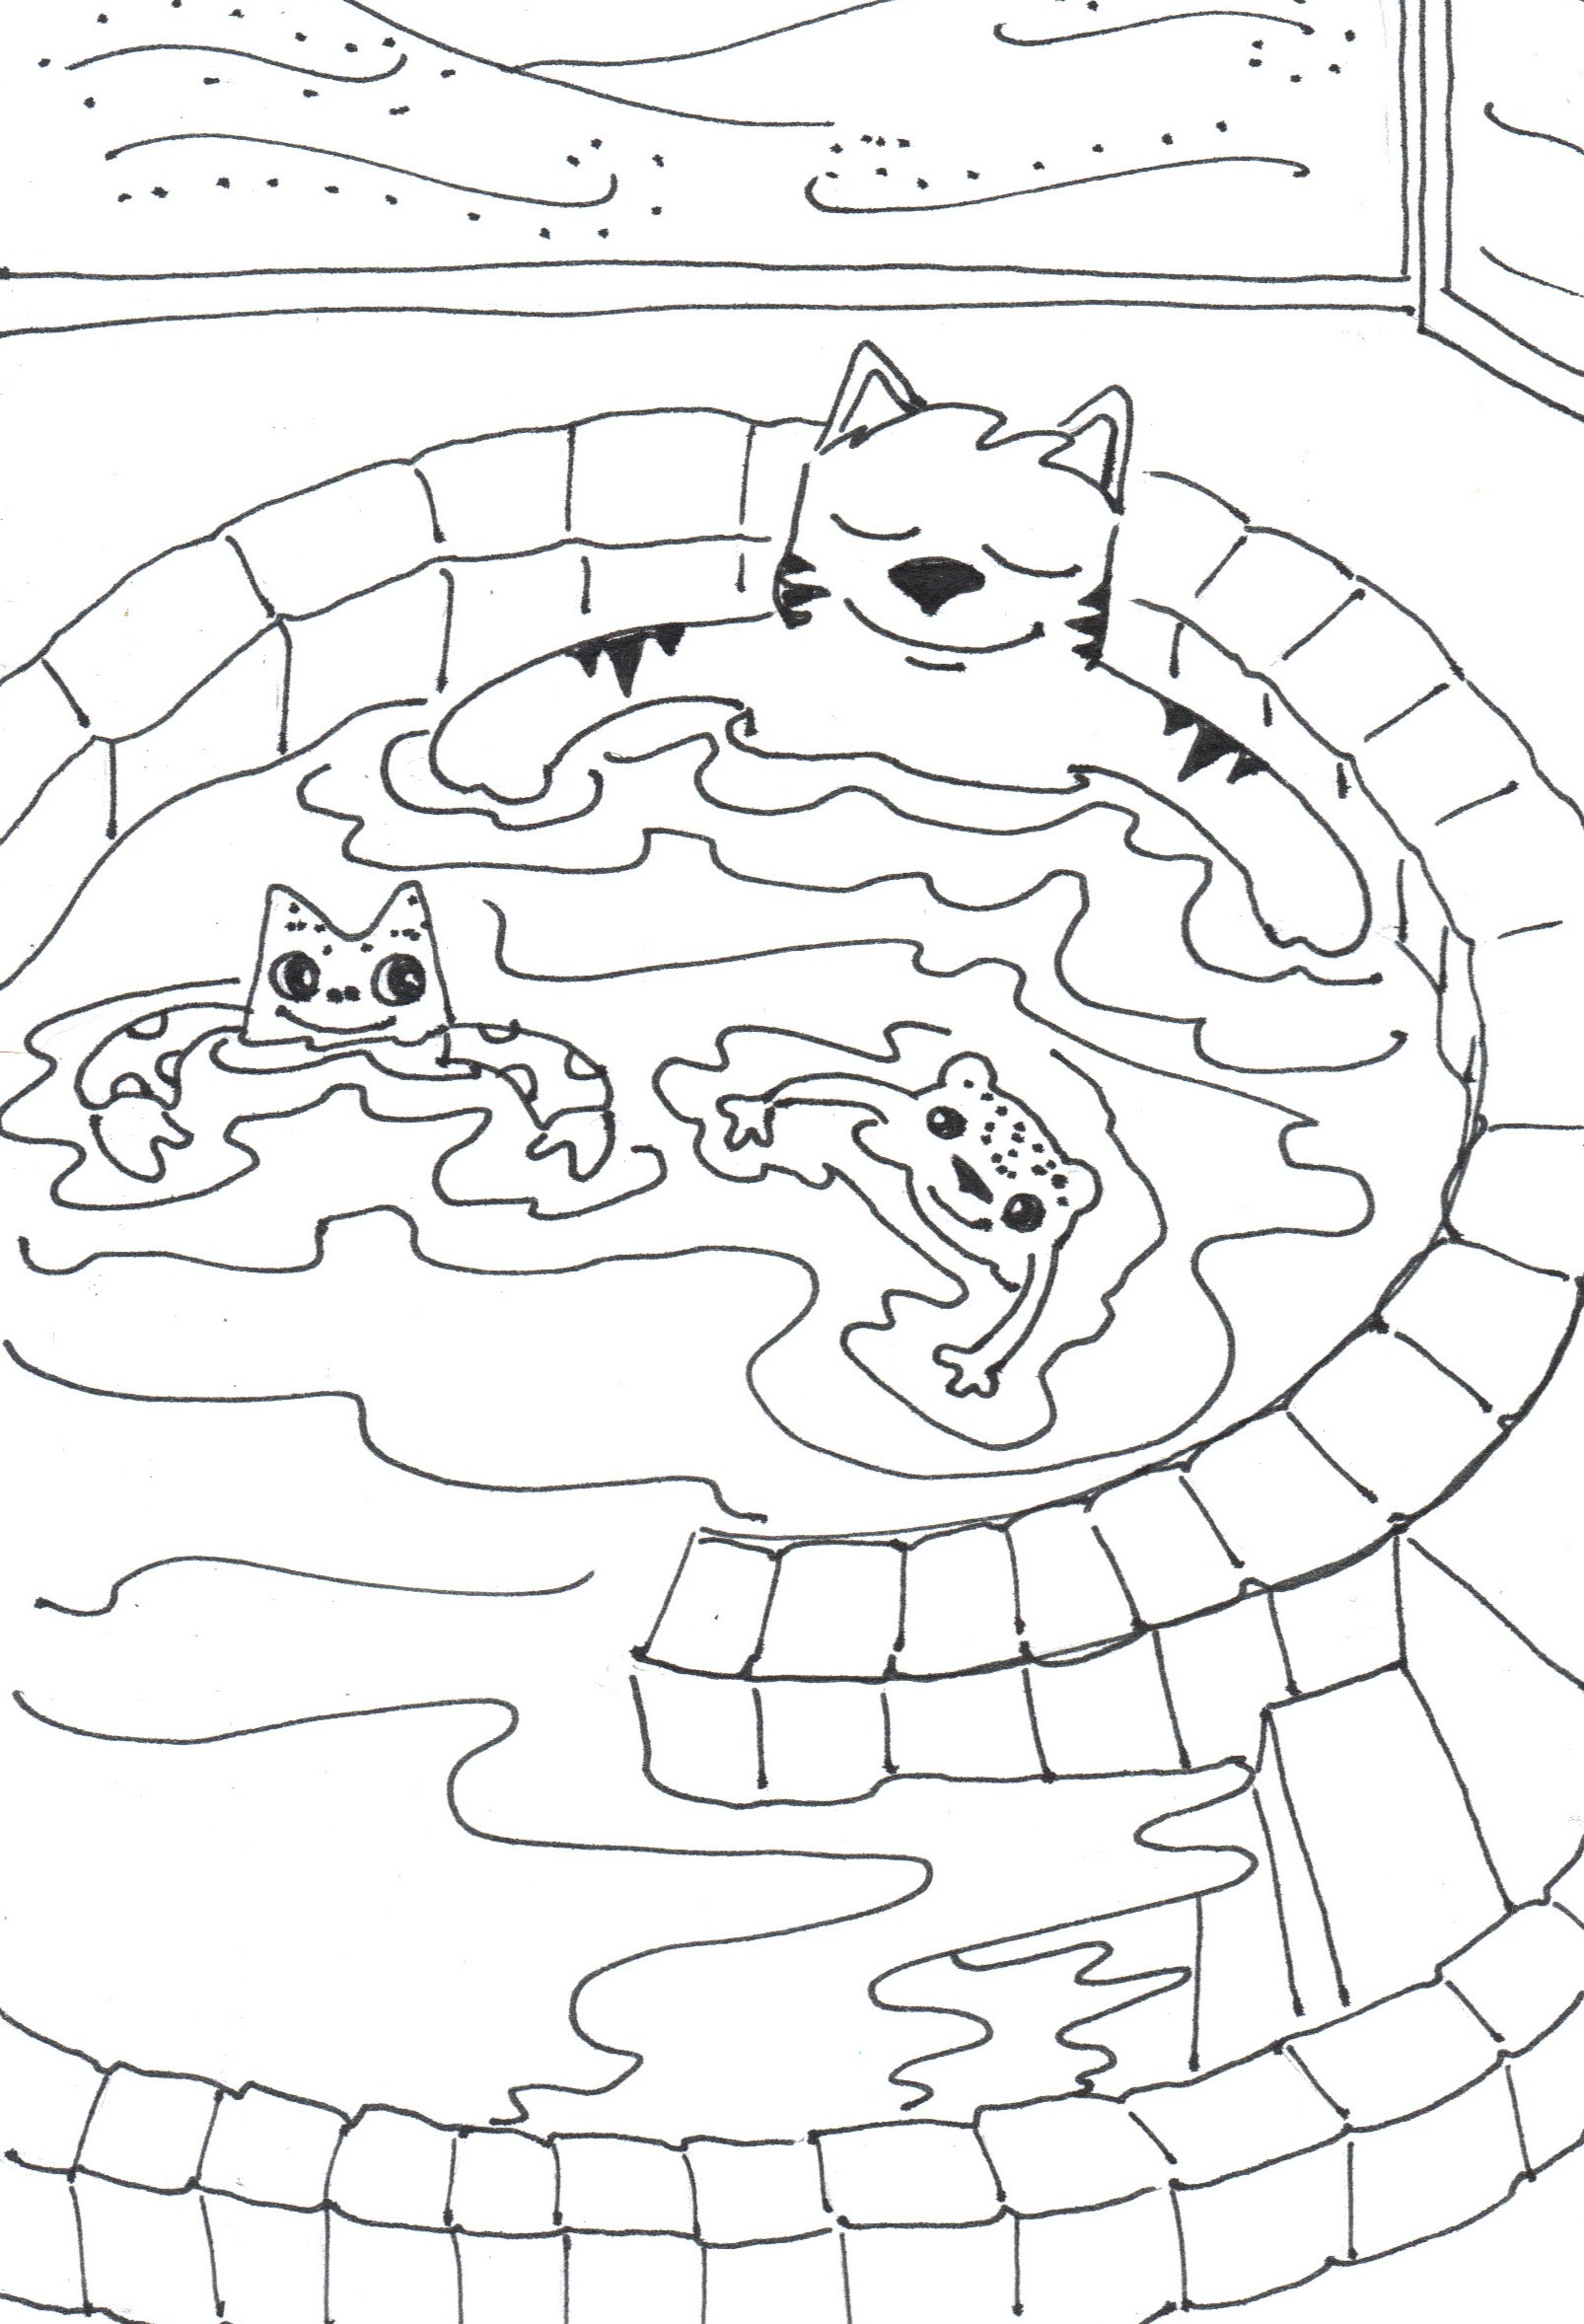 Hot Tub Drawing At Getdrawings